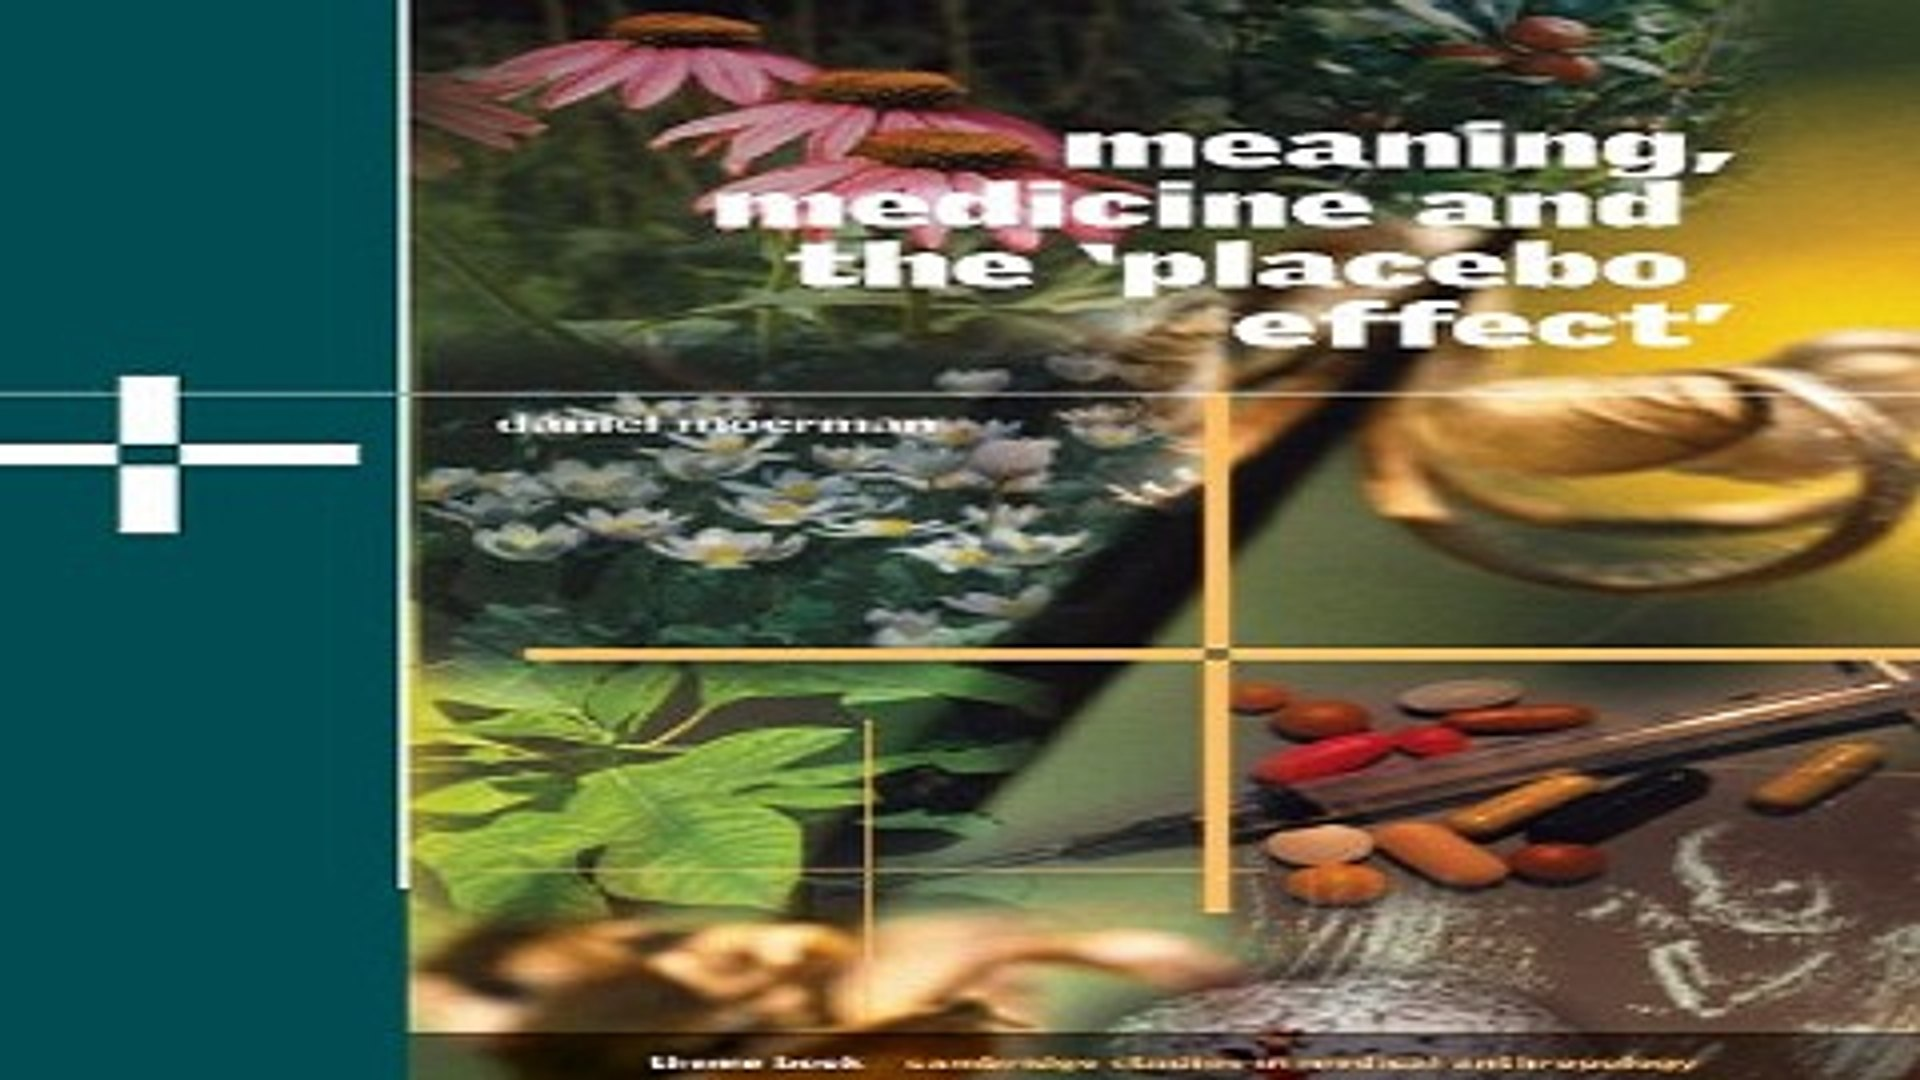 Meaning, Medicine and the Placebo Effect (Cambridge Studies in Medical Anthropology)